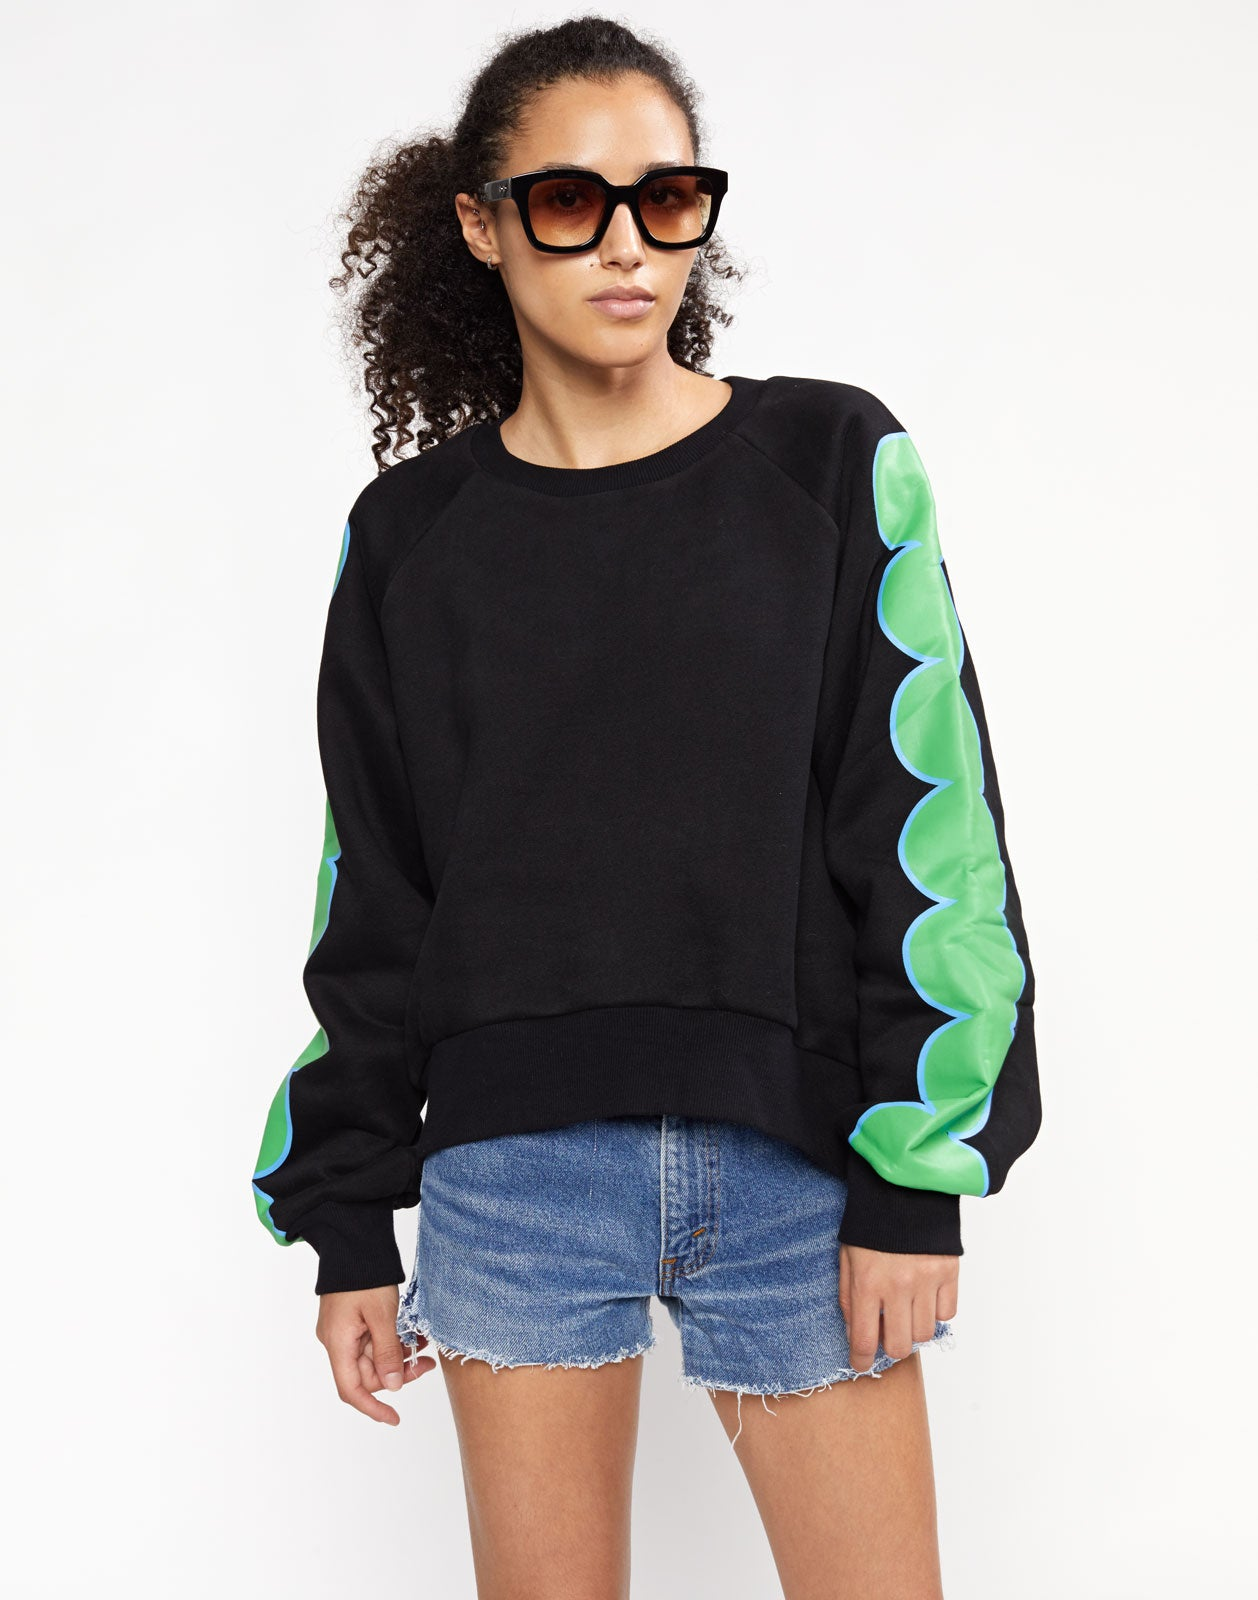 Sunday Printed Sweatshirt